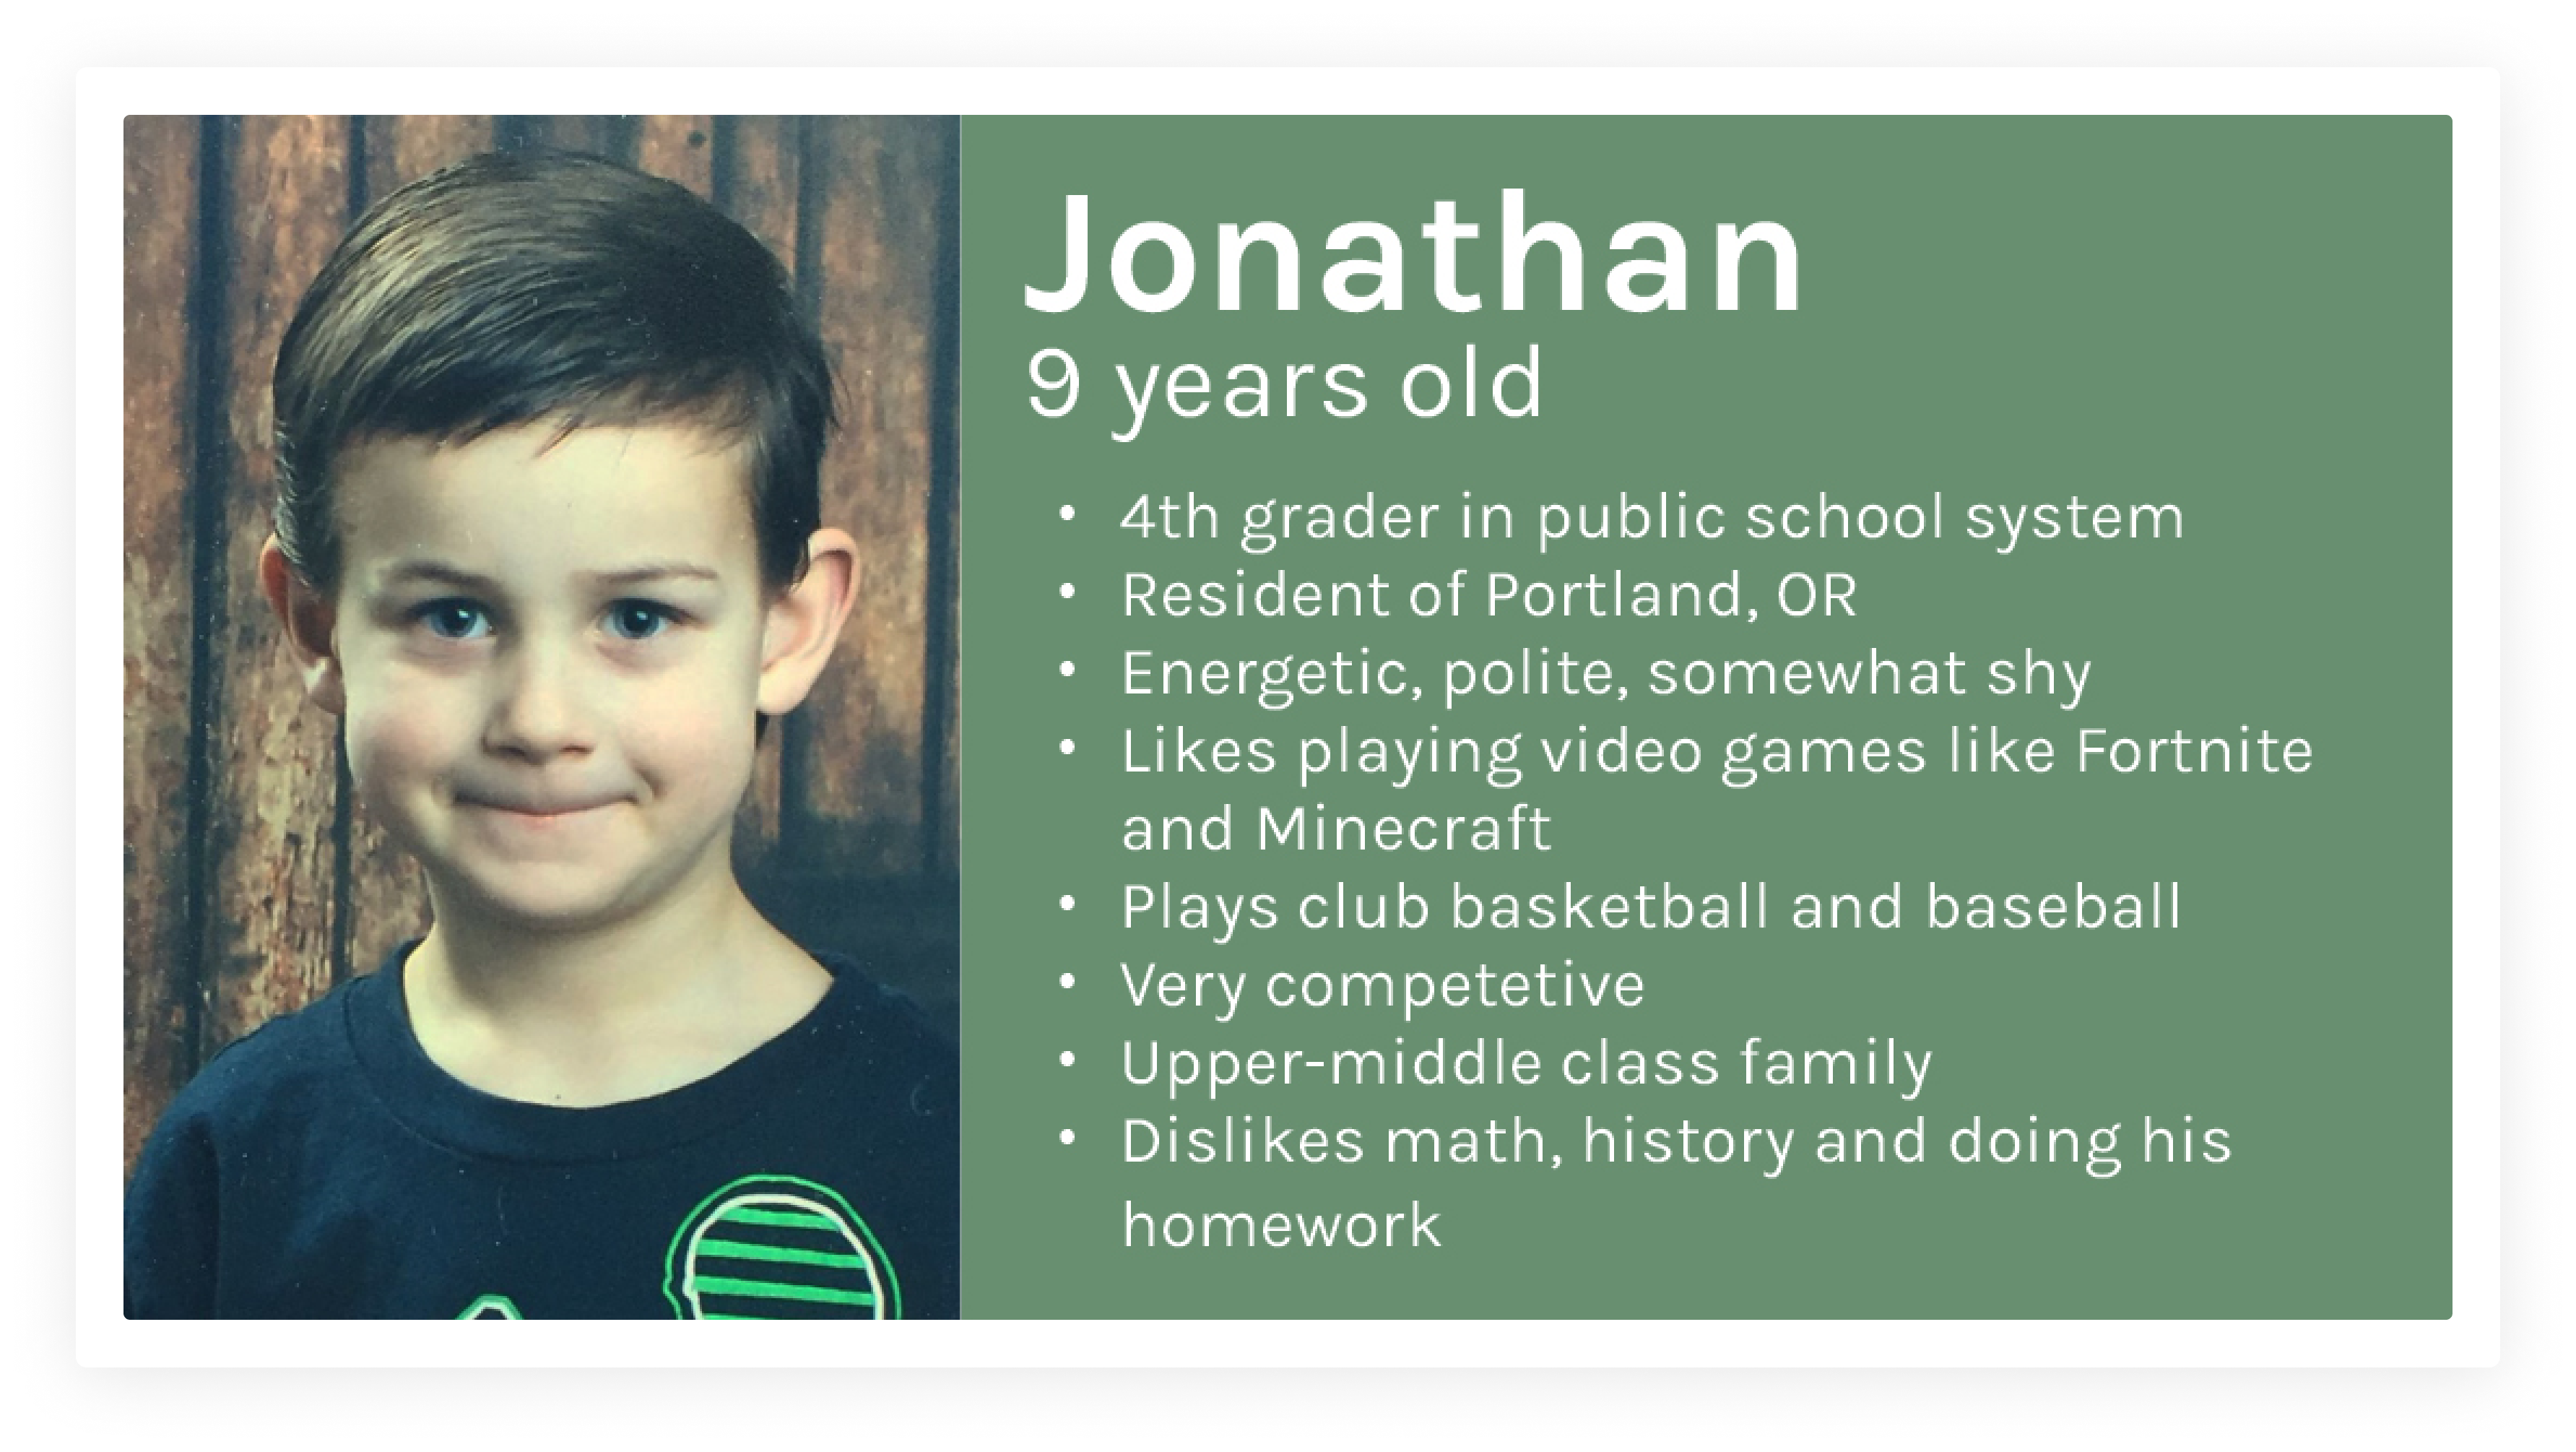 Image of young boy with description: Jonathan, 9 years old, 4th grader in public school system, resident of Portland Oregon, energetic, polite, and somewhat shy, likes playing video games like Fortnite and Minecraft, plays club basketball and baseball, very competitive, upper-middle class family, dislikes math, history, and doing his homework